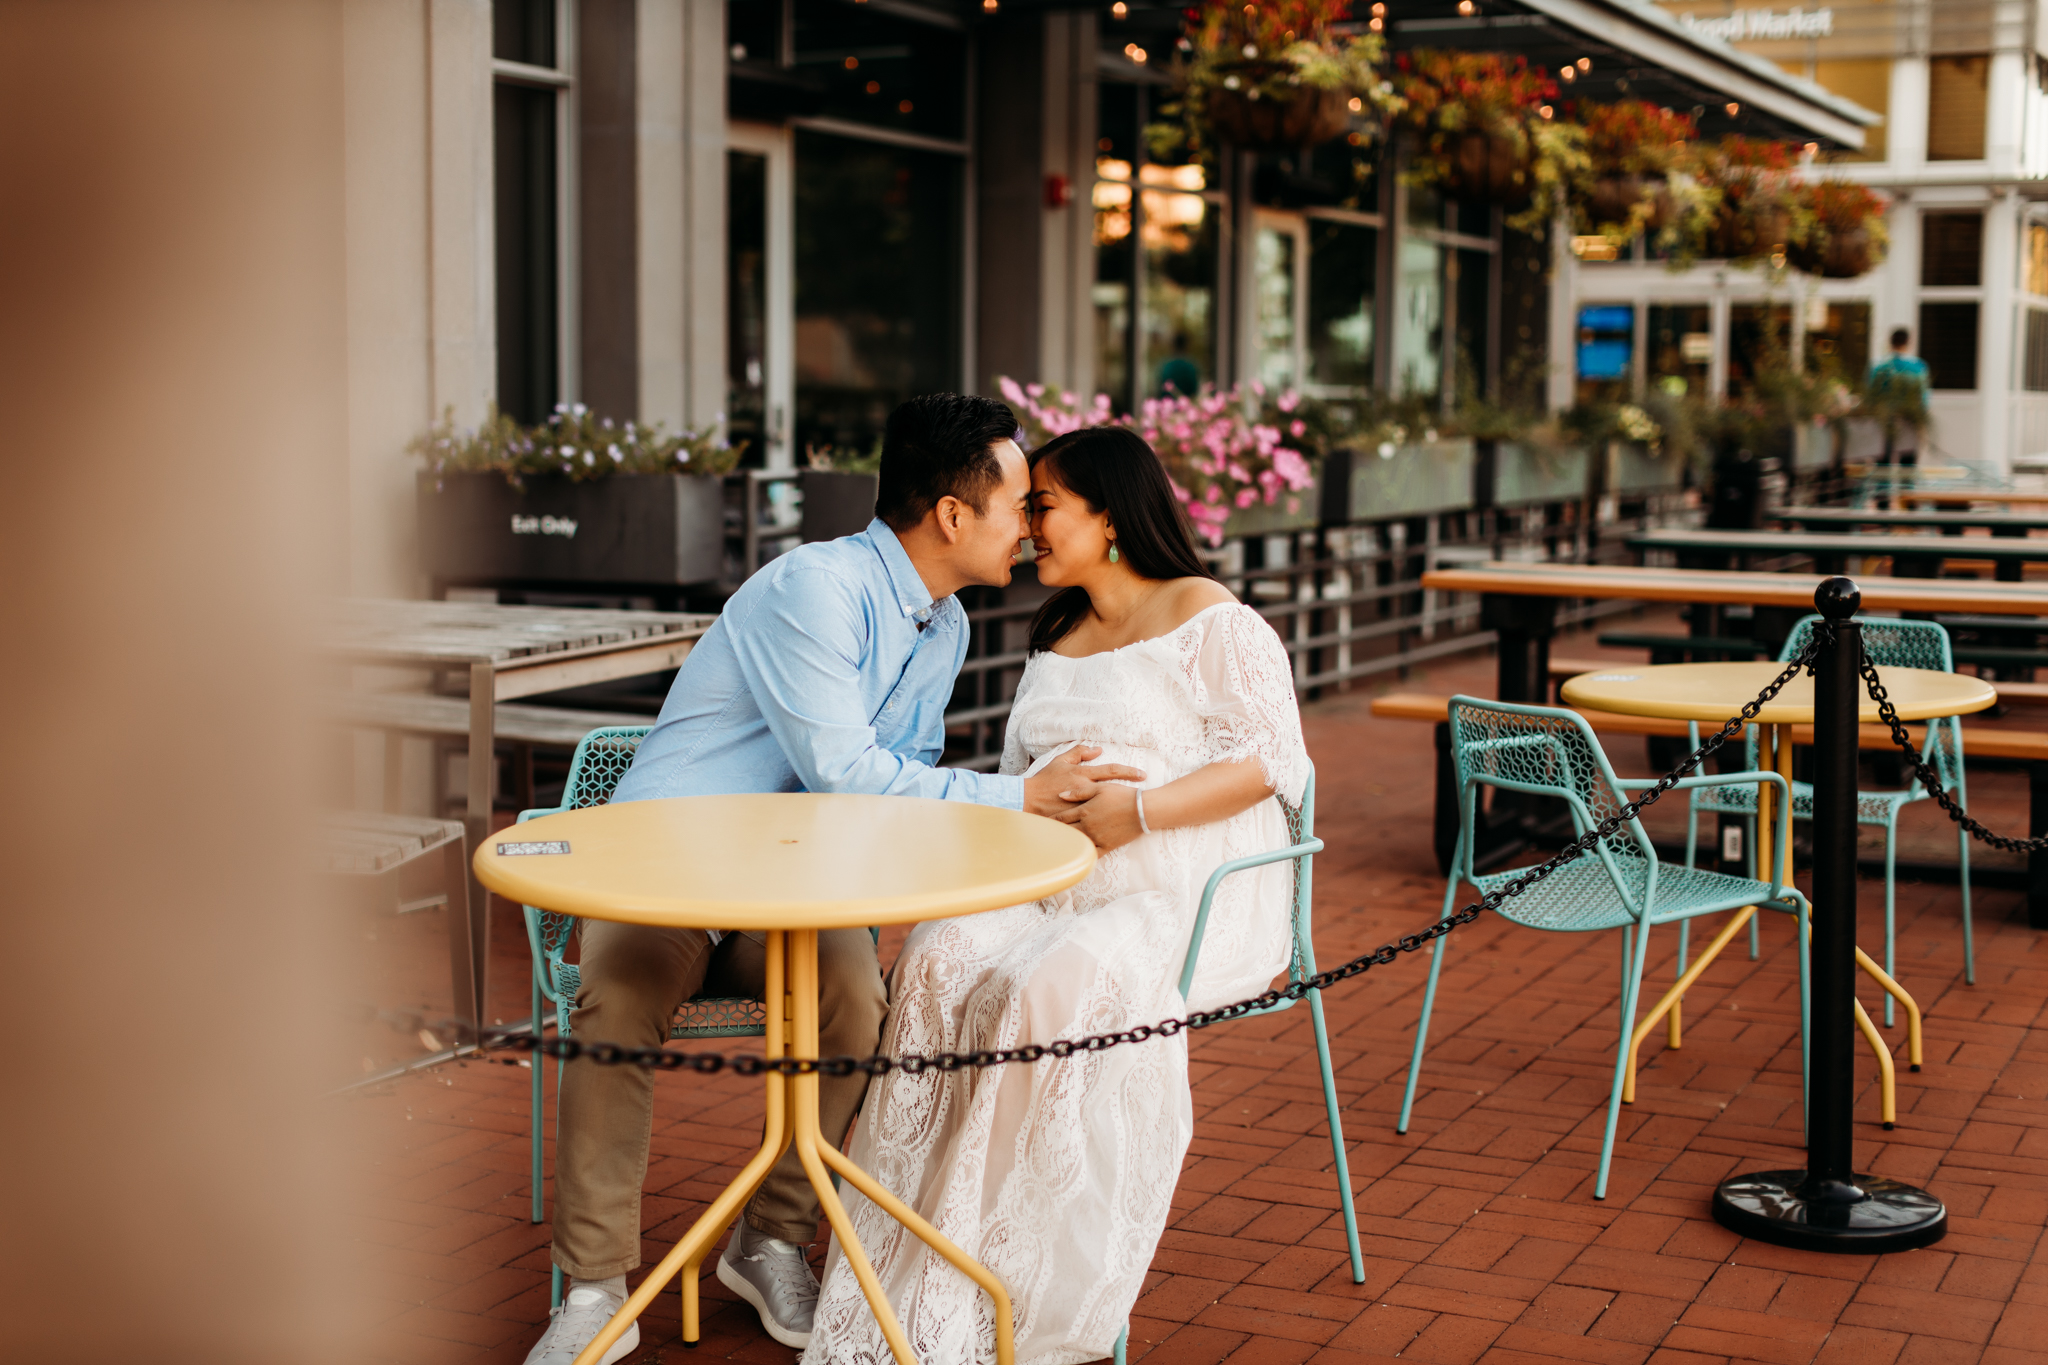 husband and wife sitting at a yellow streetside table going in for a kiss while holding their baby belly.